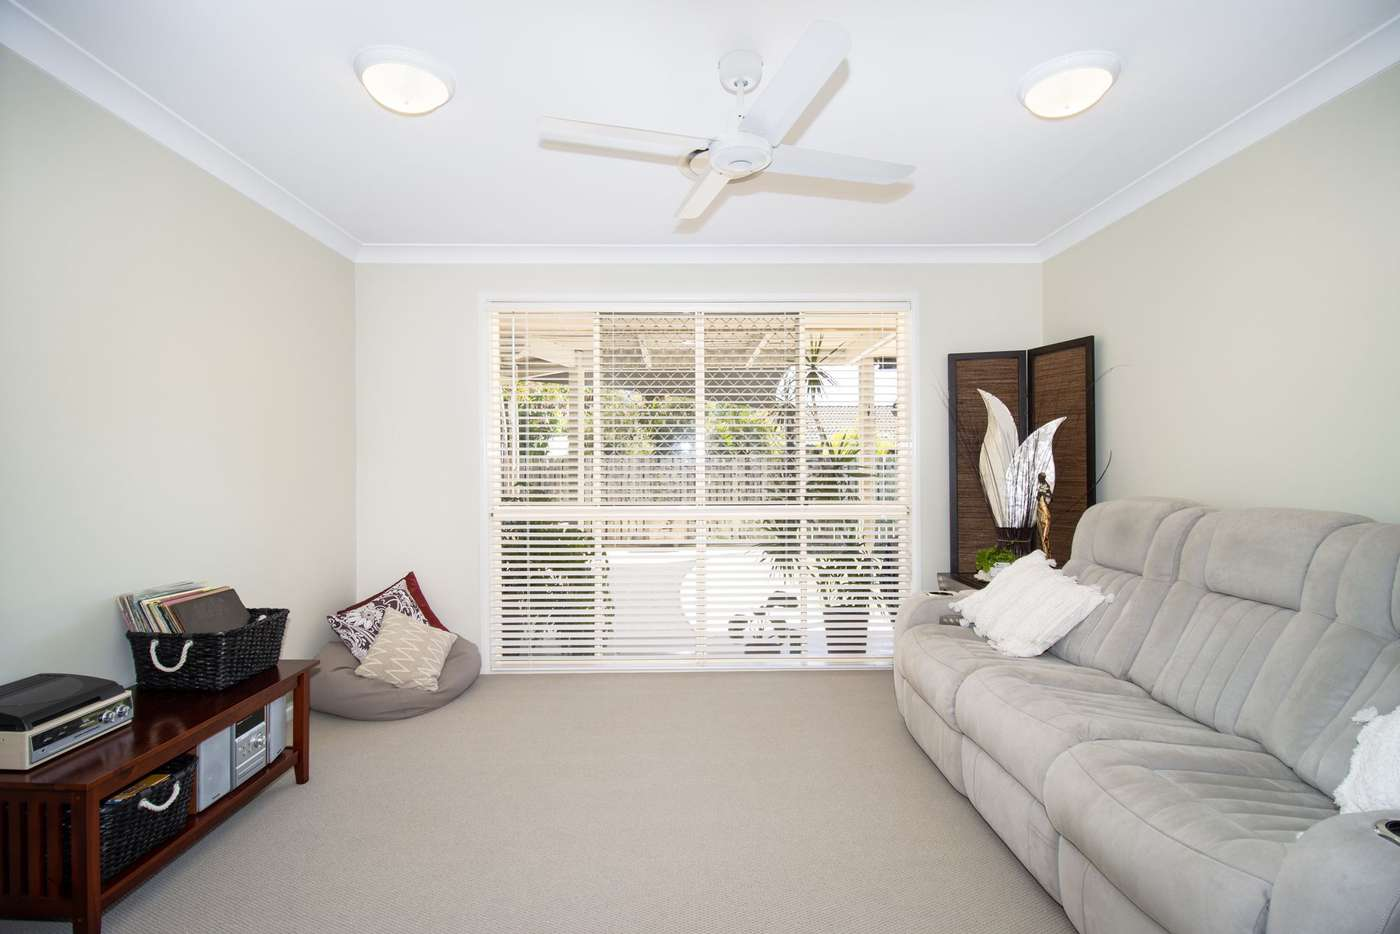 Seventh view of Homely house listing, 80 Honiton Street, Torquay QLD 4655